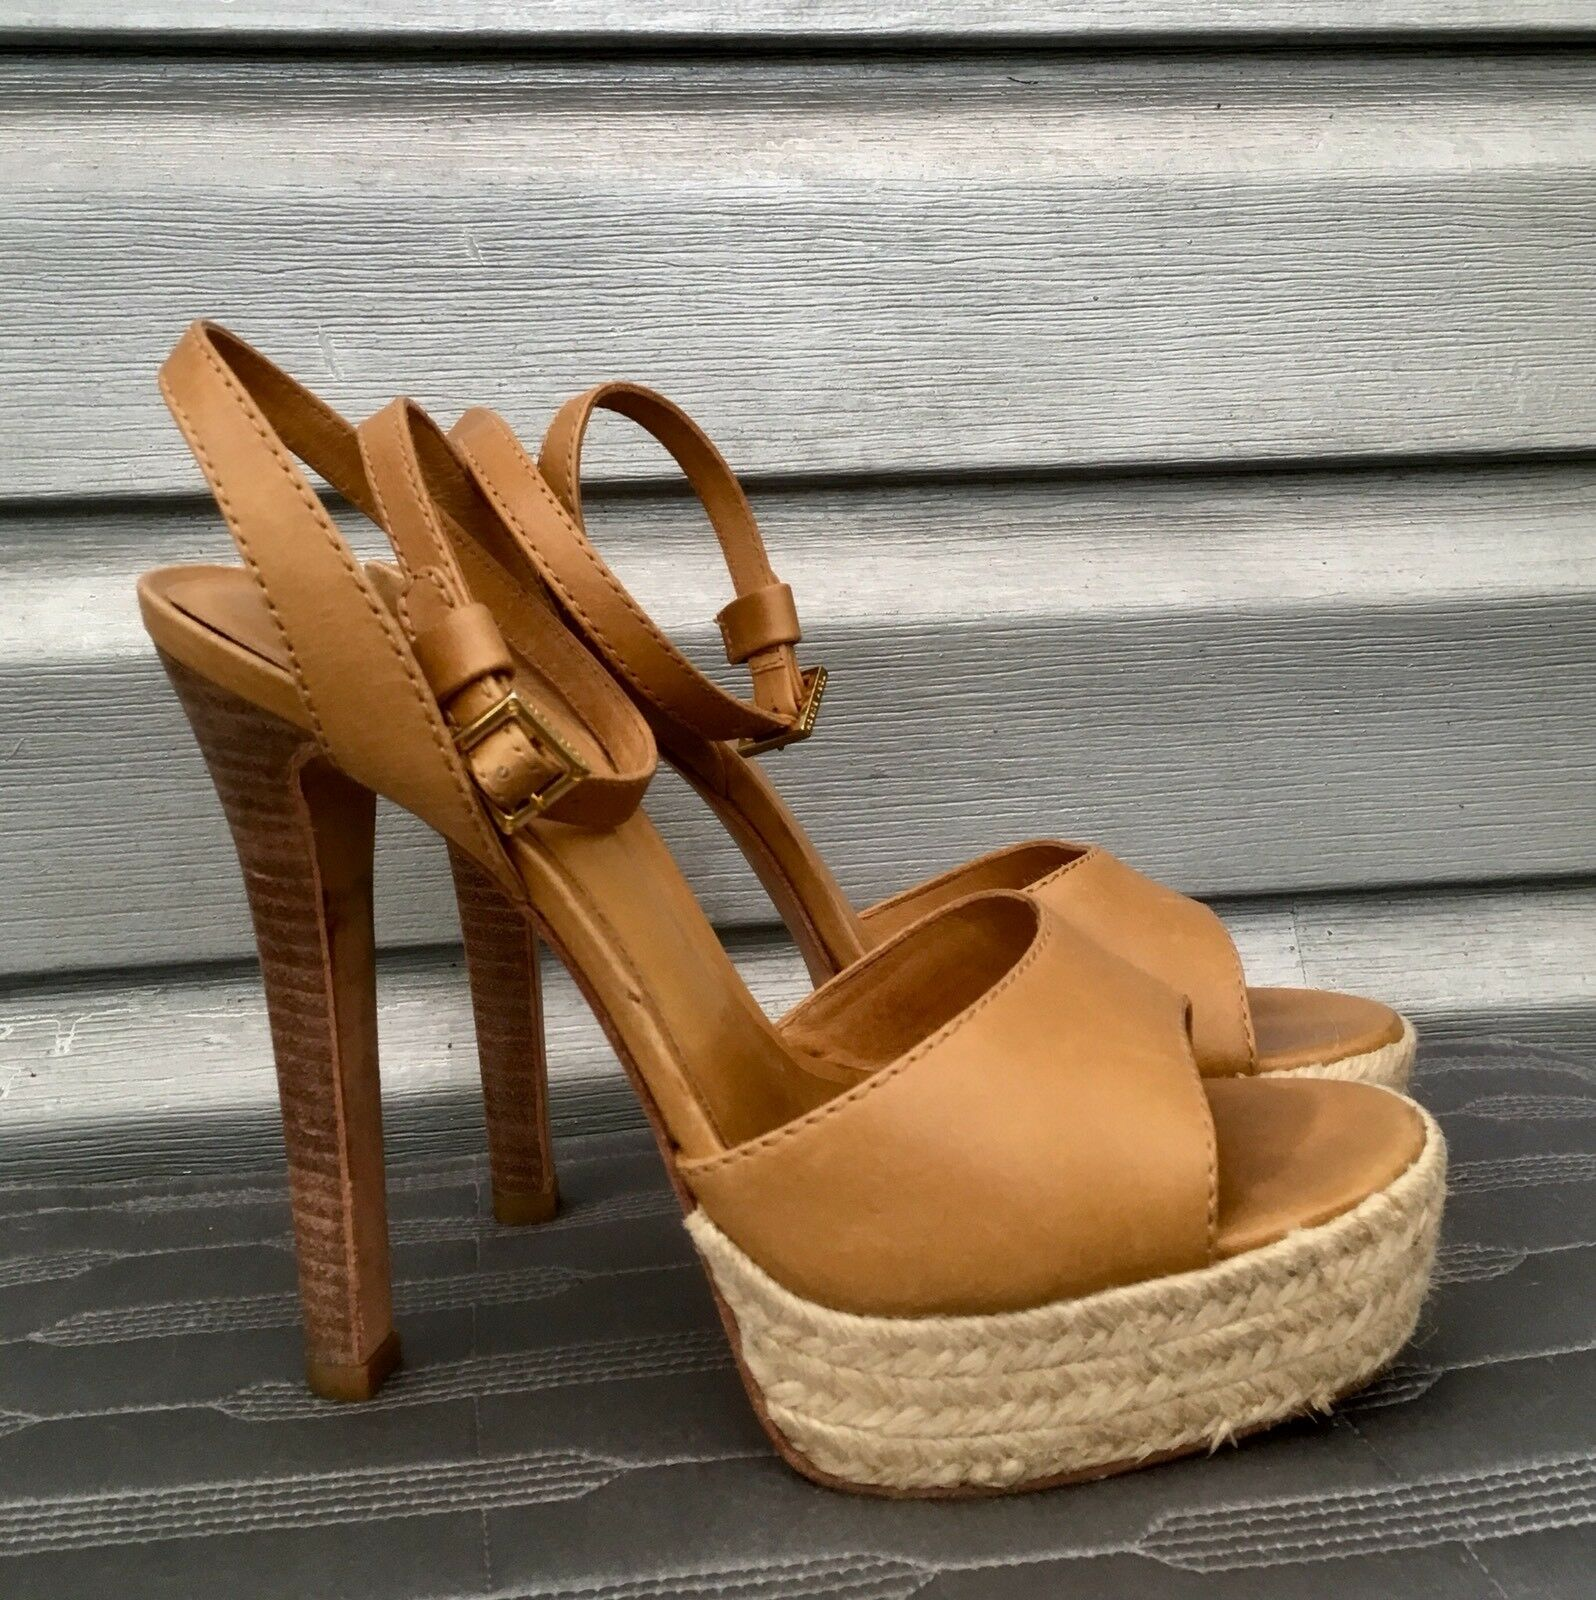 TORY BURCH Tan Leather Bradshaw Strappy Platform Open Toe Espadrille Heels